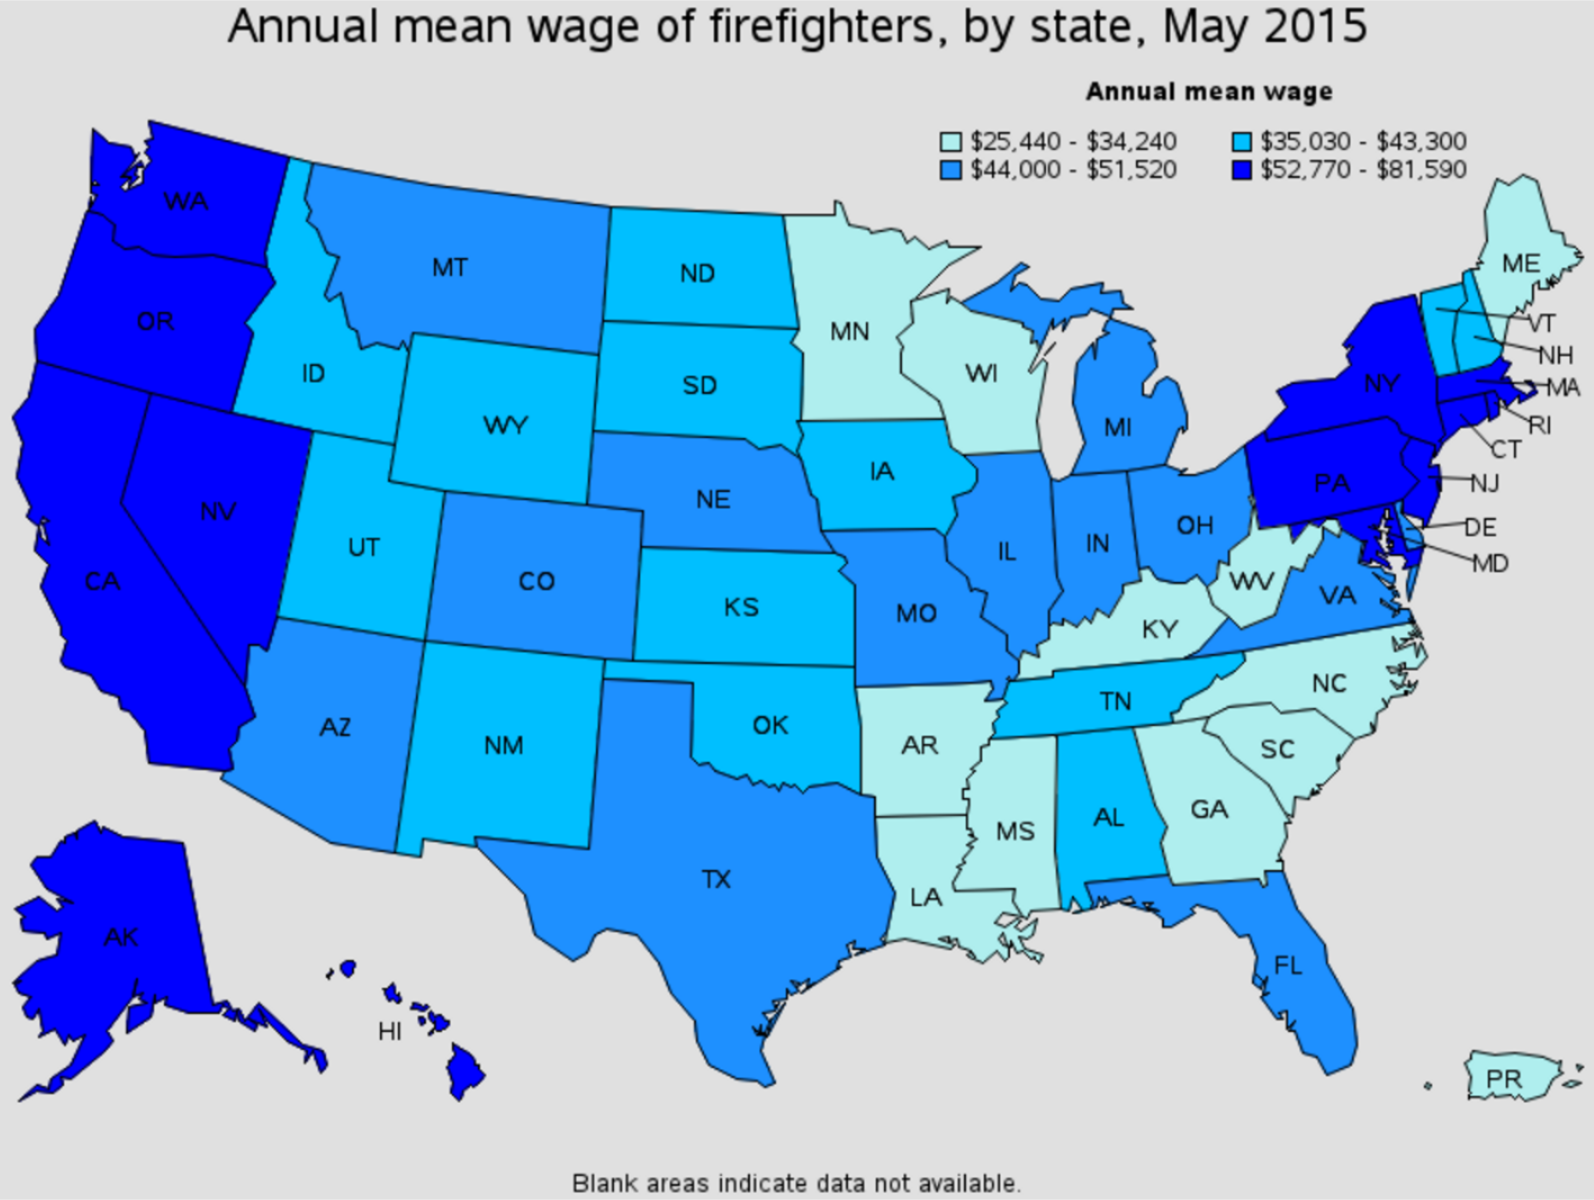 firefighter average salary by state Vicksburg Mississippi